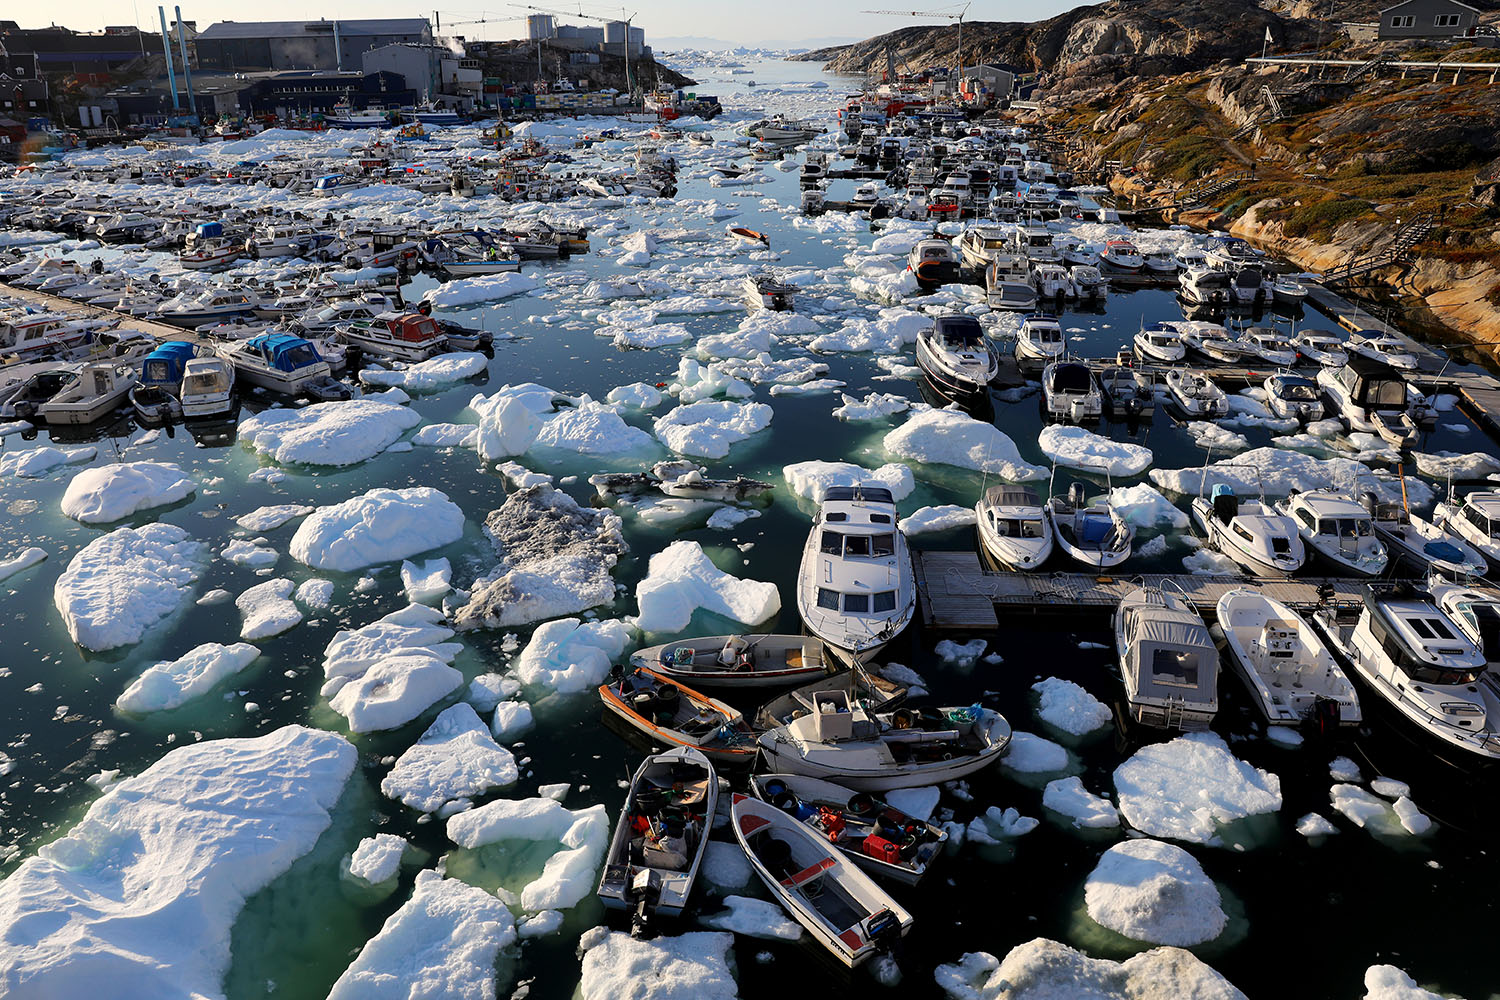 Sea ice floats off a port in Ilulissat, Greenland, on Sept. 2. Mario Tama/Getty Images